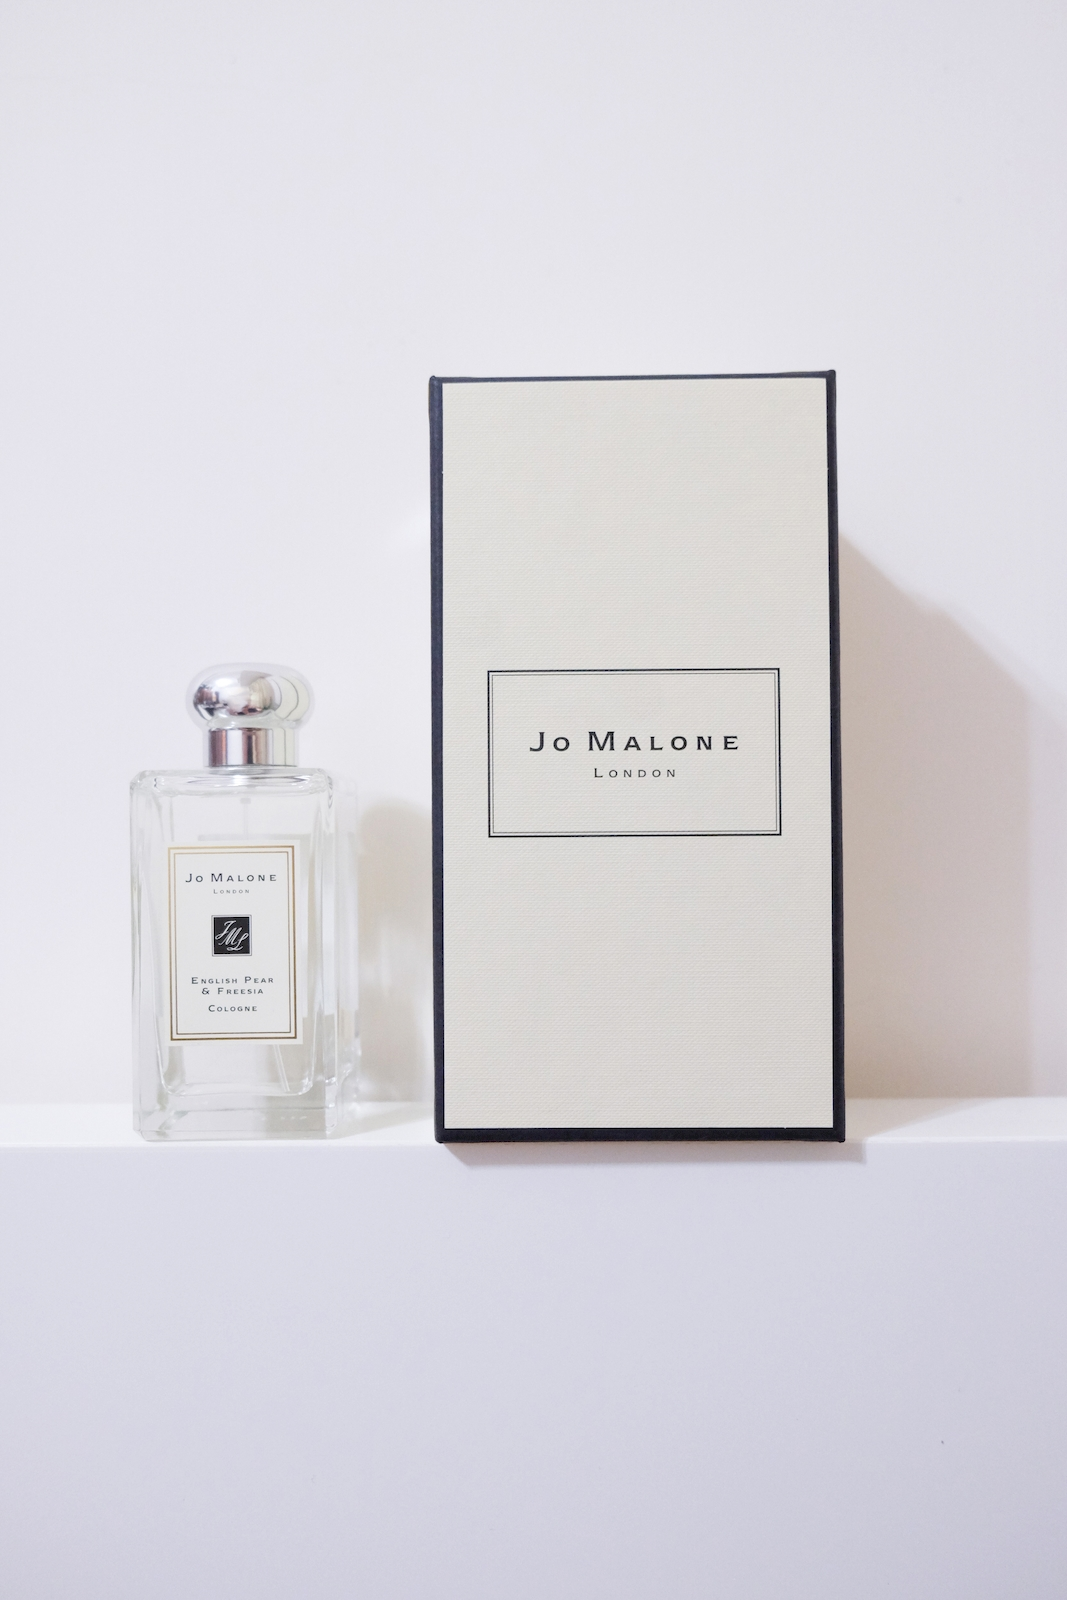 Jo Malone London 英國梨&小蒼蘭 English Pear & Freesia Cologne